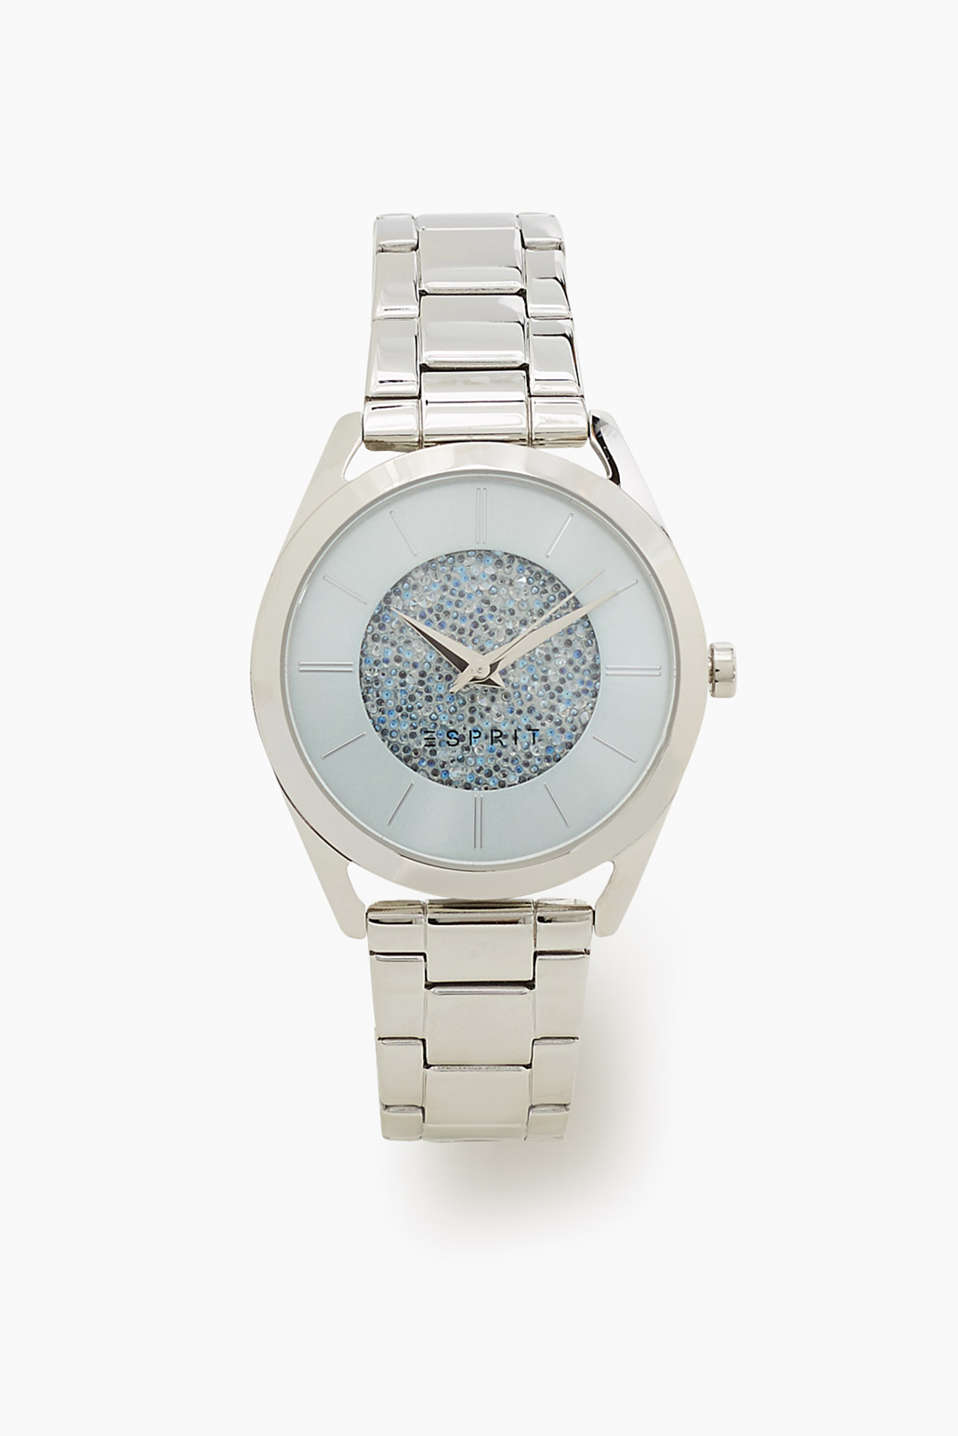 Esprit - Stainless steel watch + glittering dial